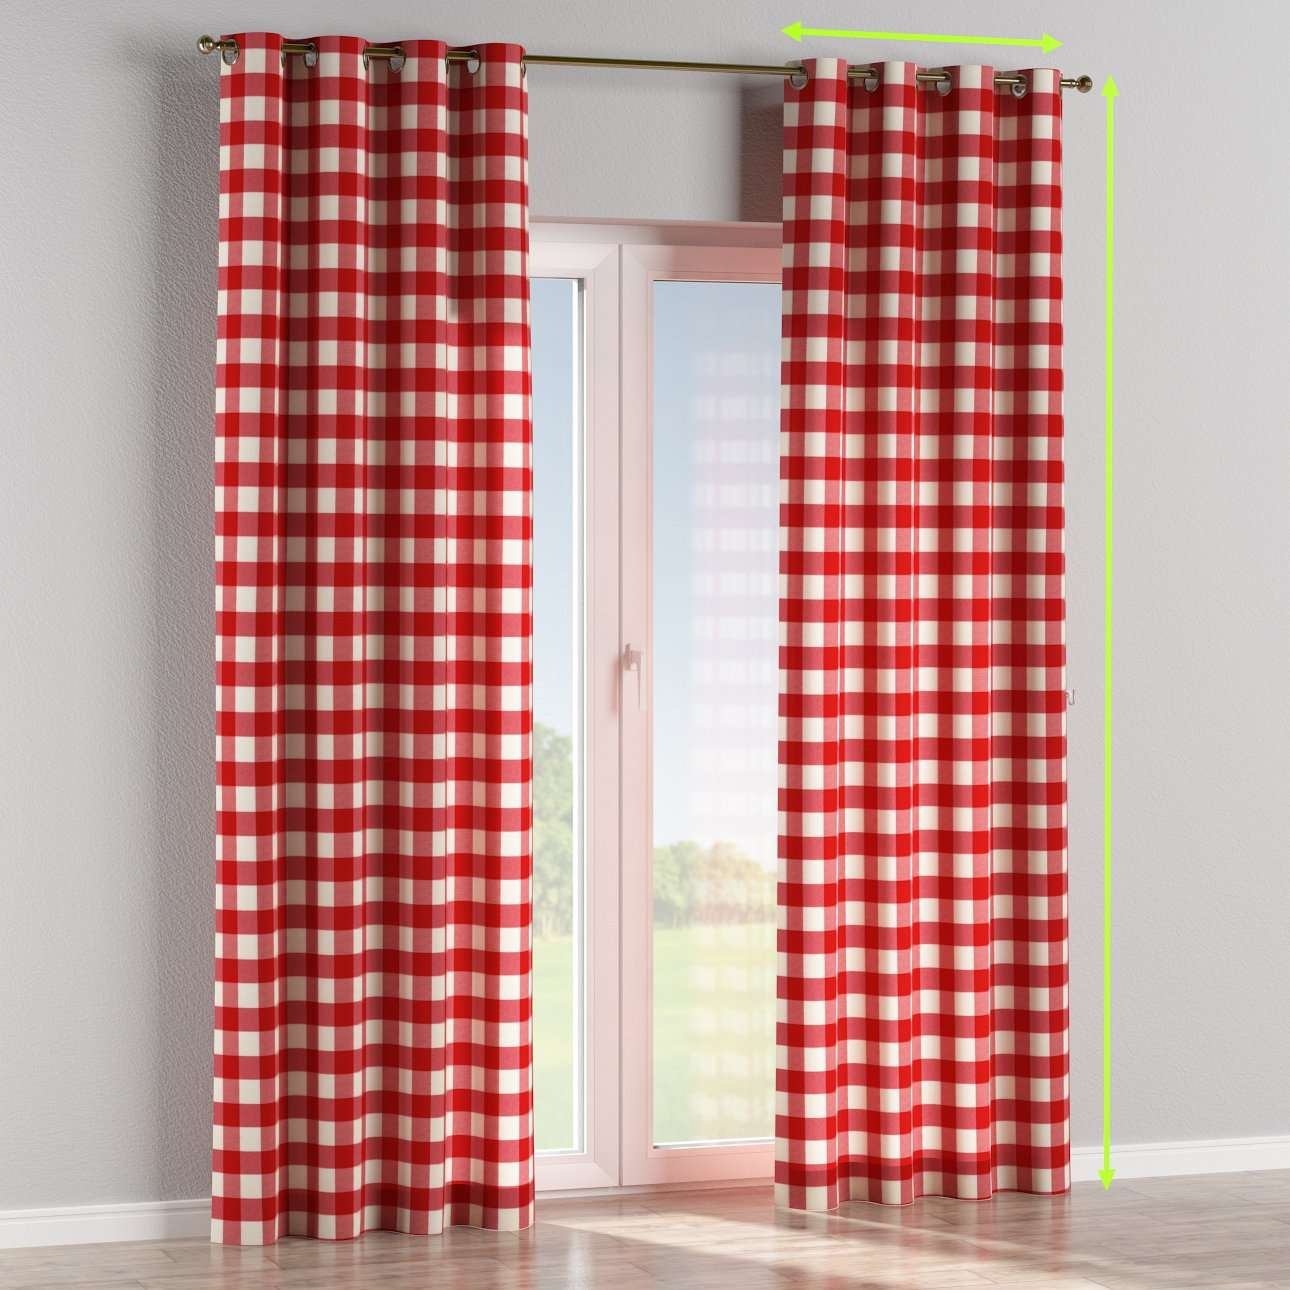 Eyelet curtains in collection Quadro, fabric: 136-18